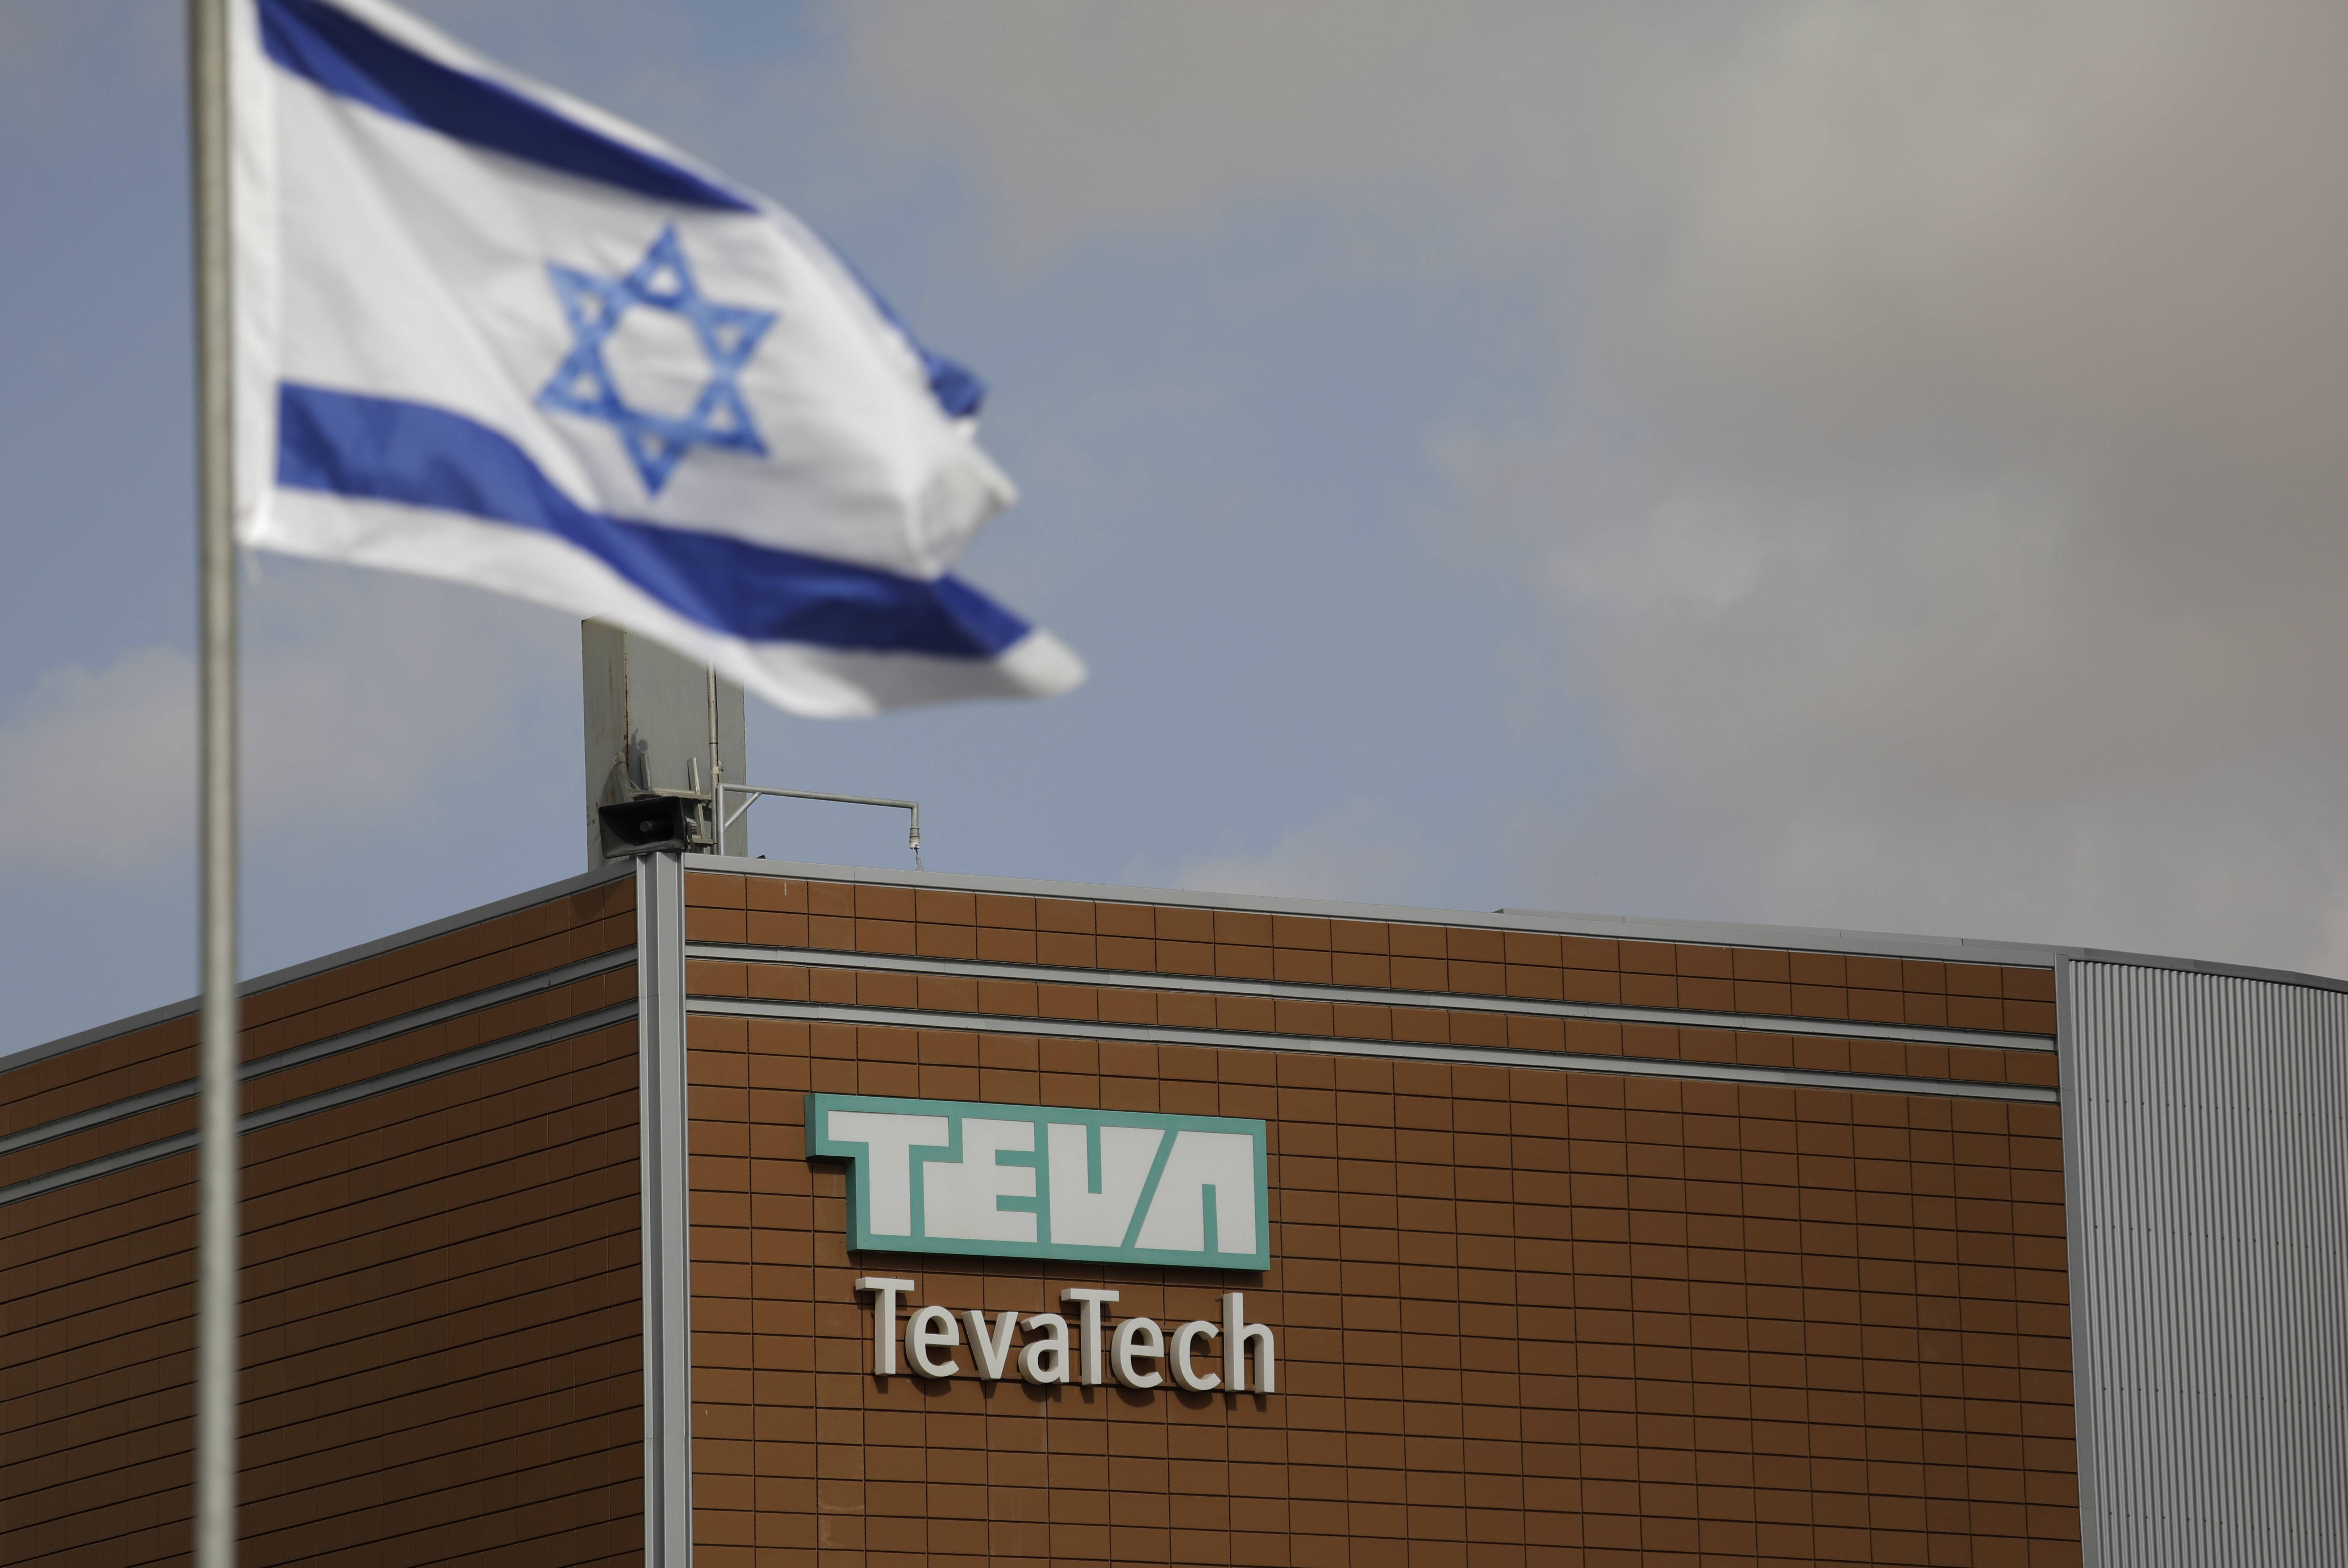 Teva's new CEO to slash 25 percent of jobs to salvage ailing drugmaker